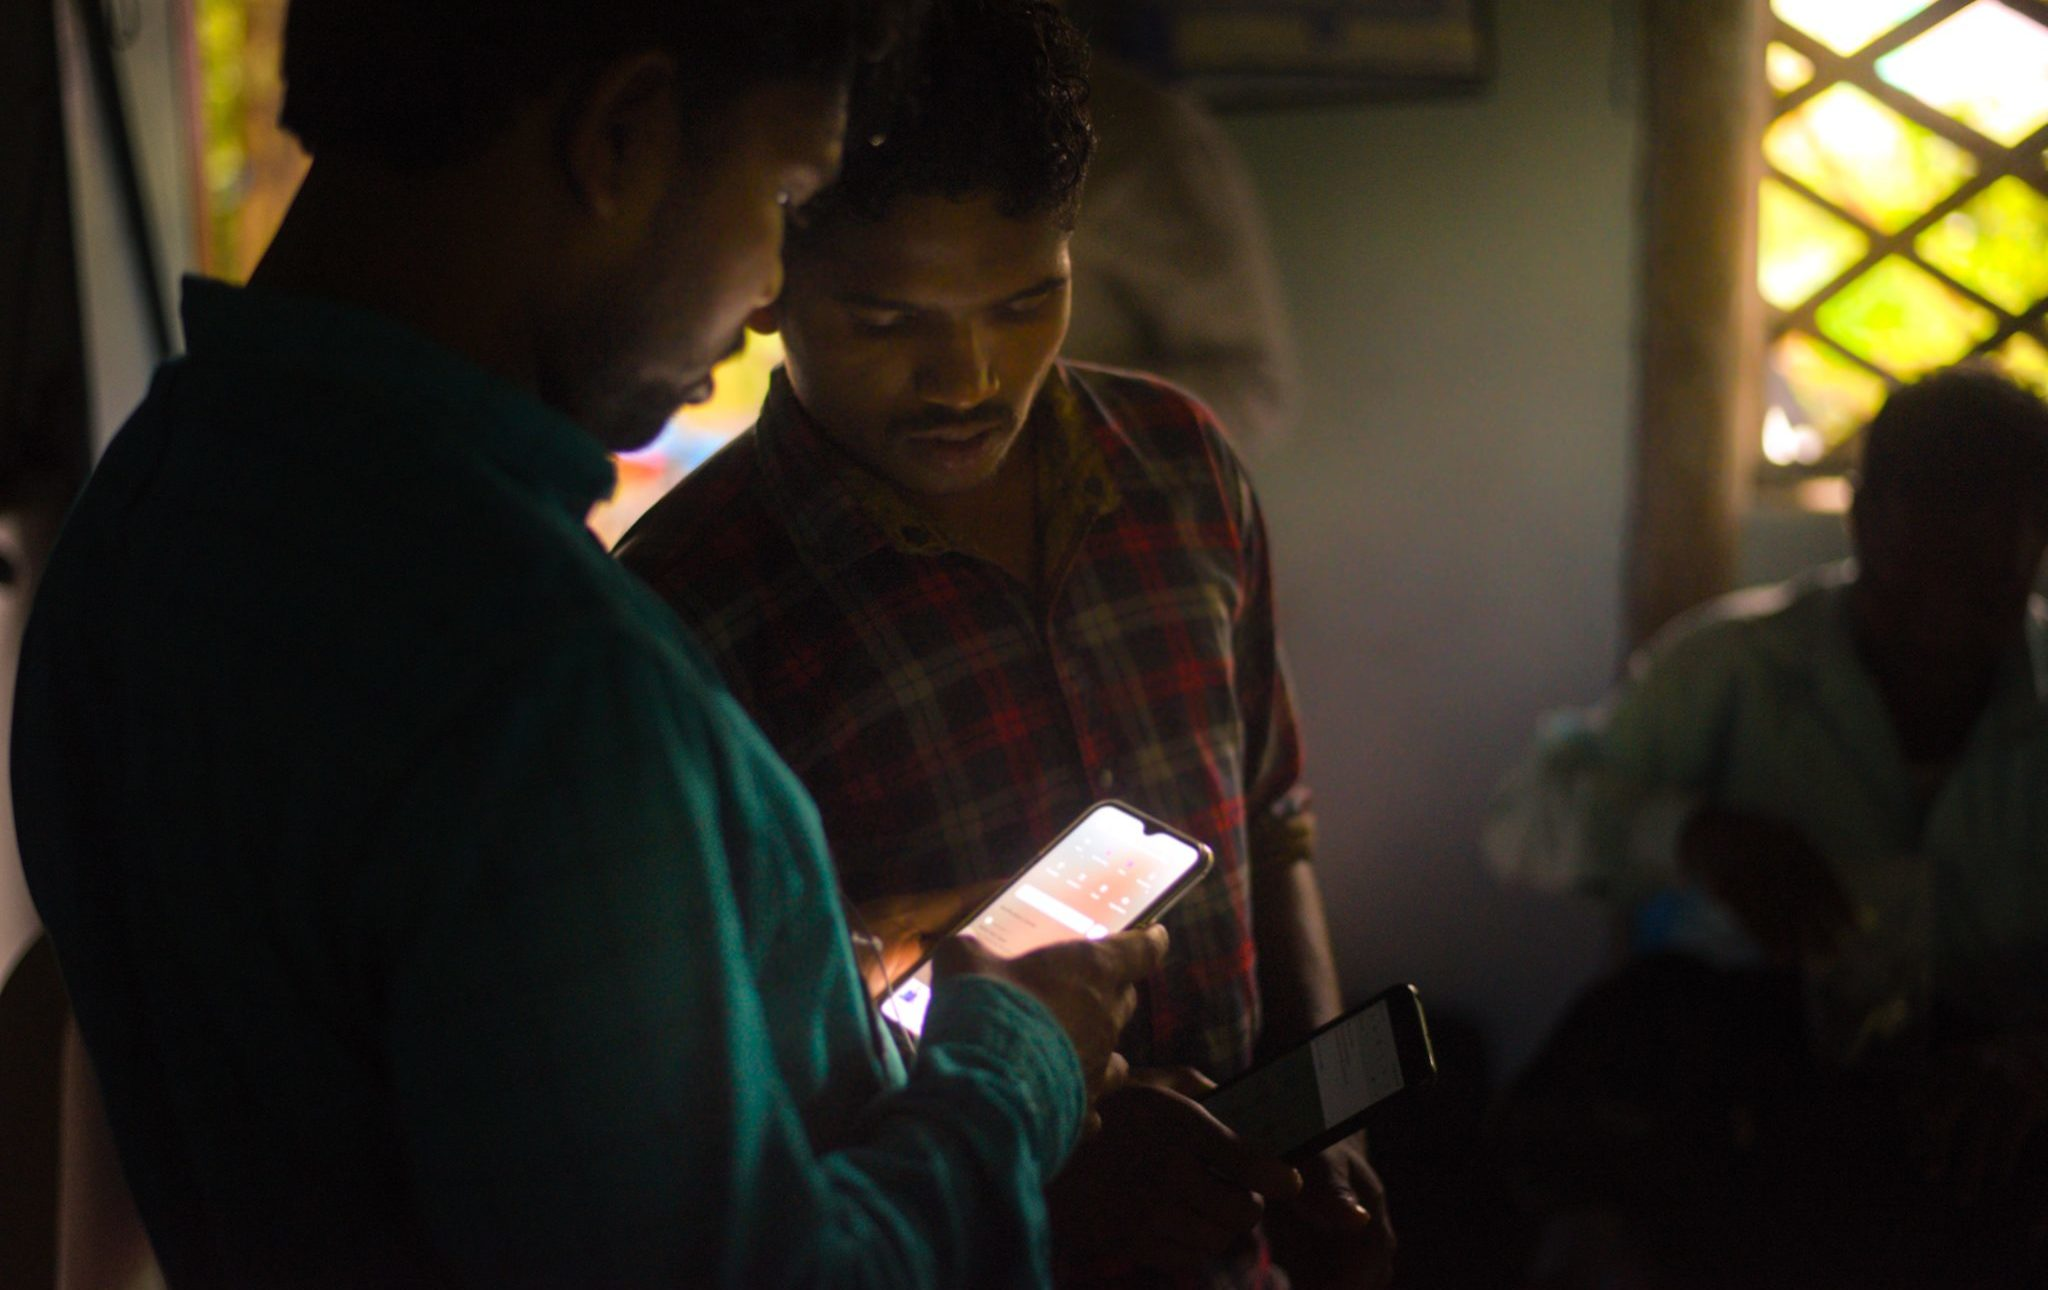 Two Indian men look at glowing smartphone screen with Hum auido Bible app